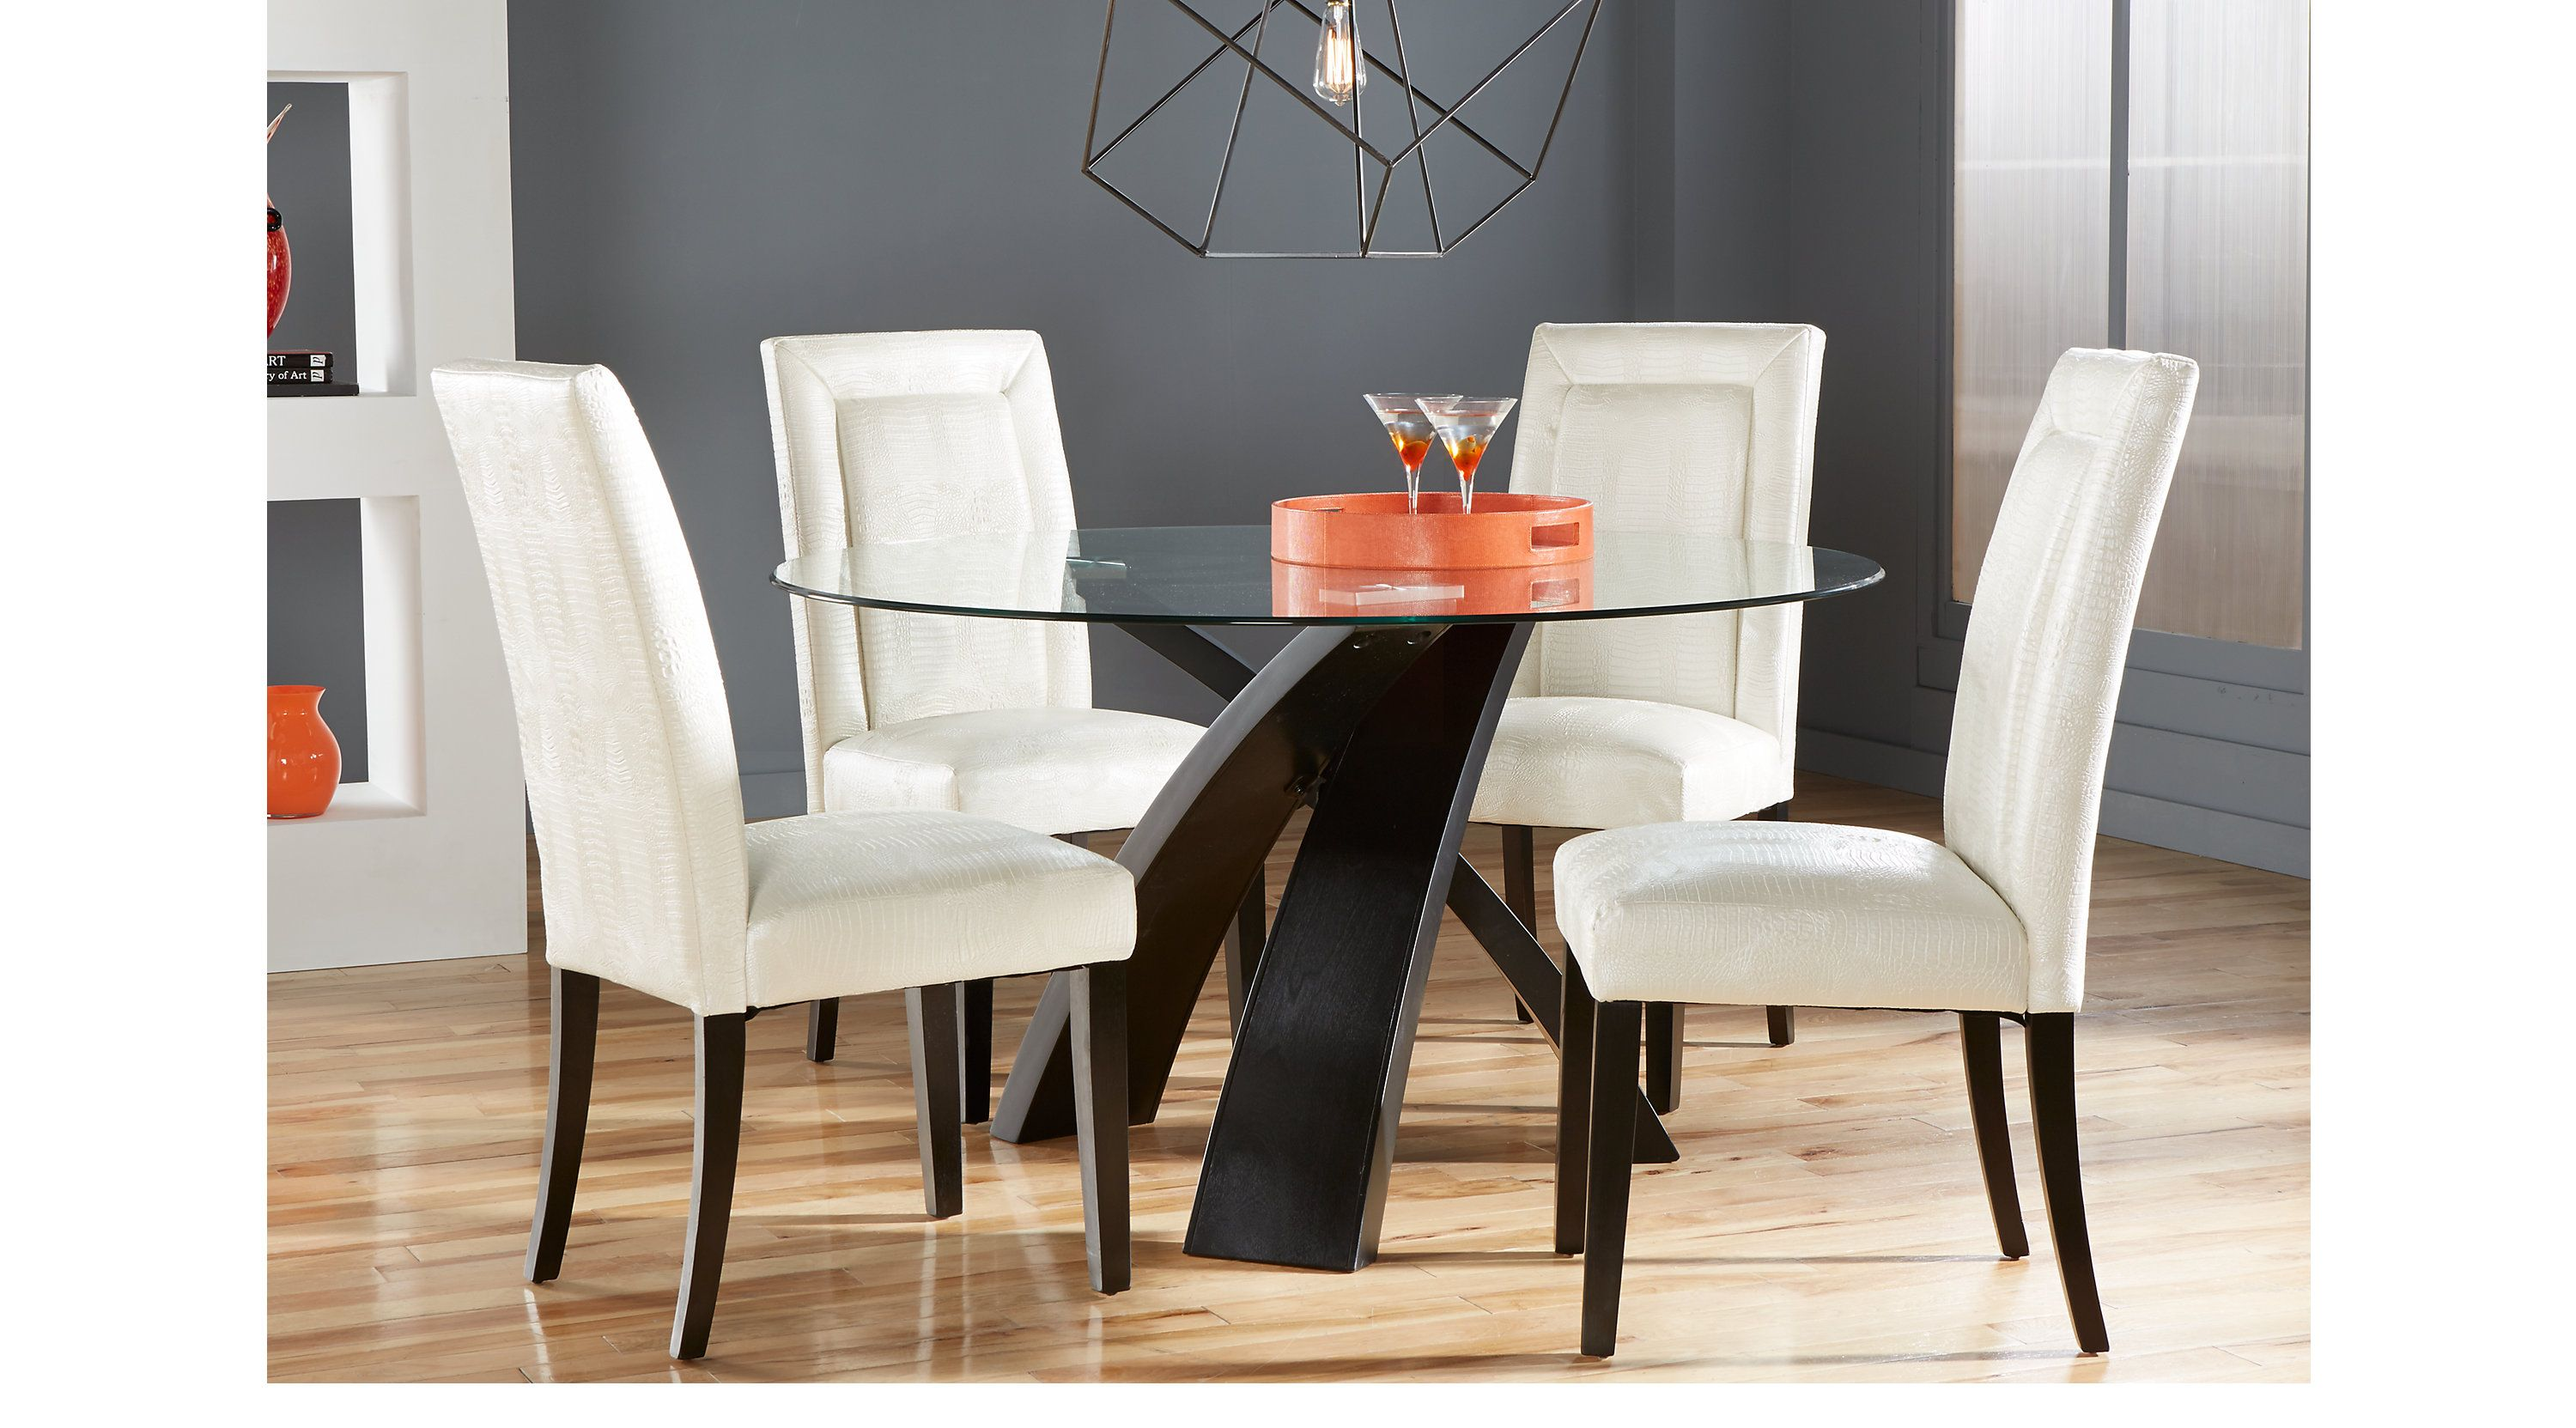 Dining Room Sets Rooms To Go Del Mar Ebony 5 Pc Round Dining Set White Chairs 4252569p Round Dining Room Table Round Dining Room Dining Room Sets Rooms to go glass dining table